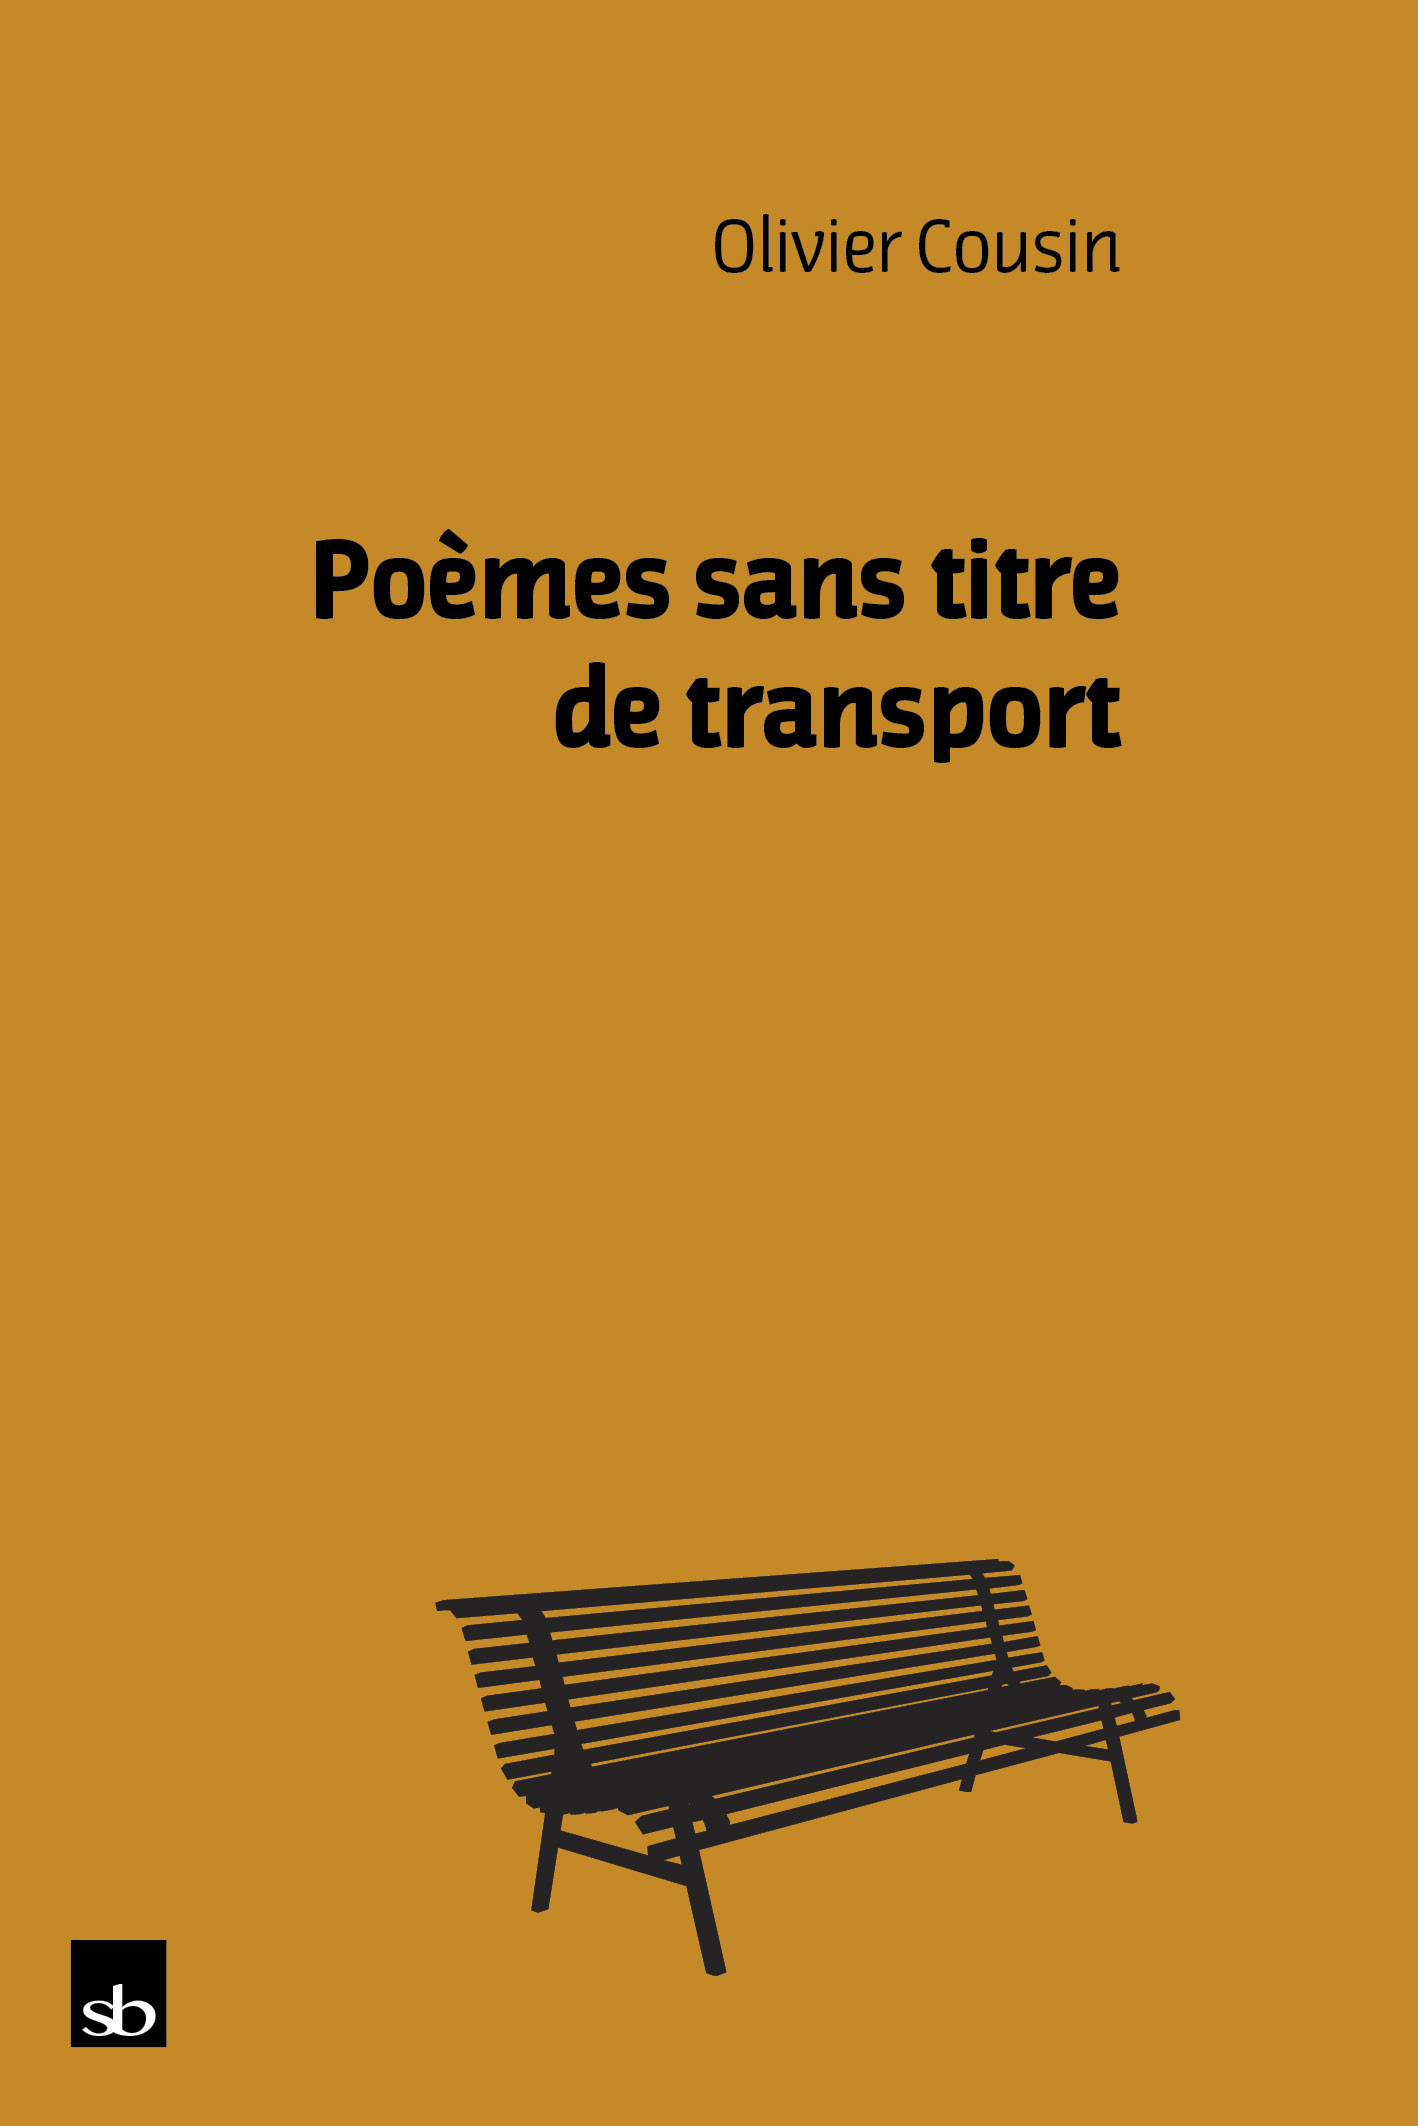 POEMES SANS TITRE DE TRANSPORT